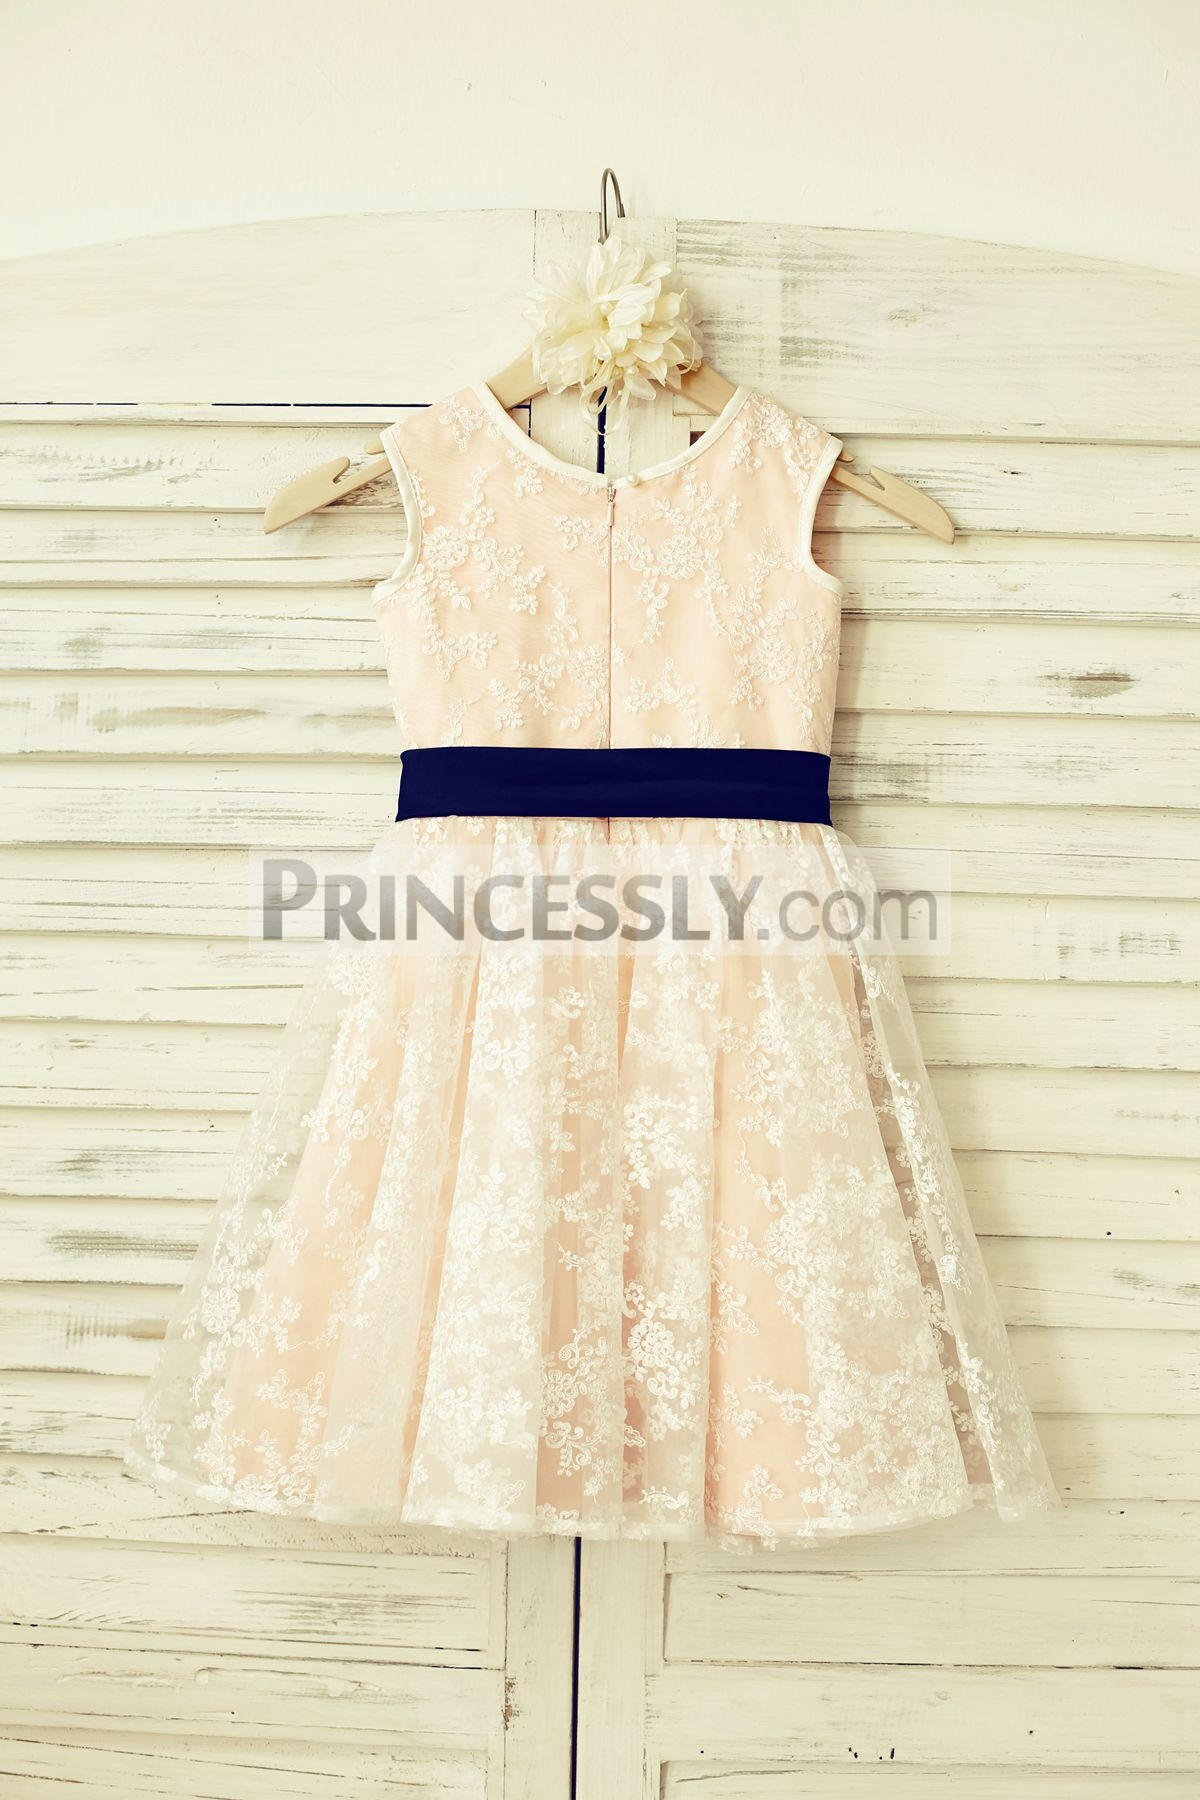 Sheer Lace Flower Girl Dress With Blush Pink Lining Navy Blue Sash